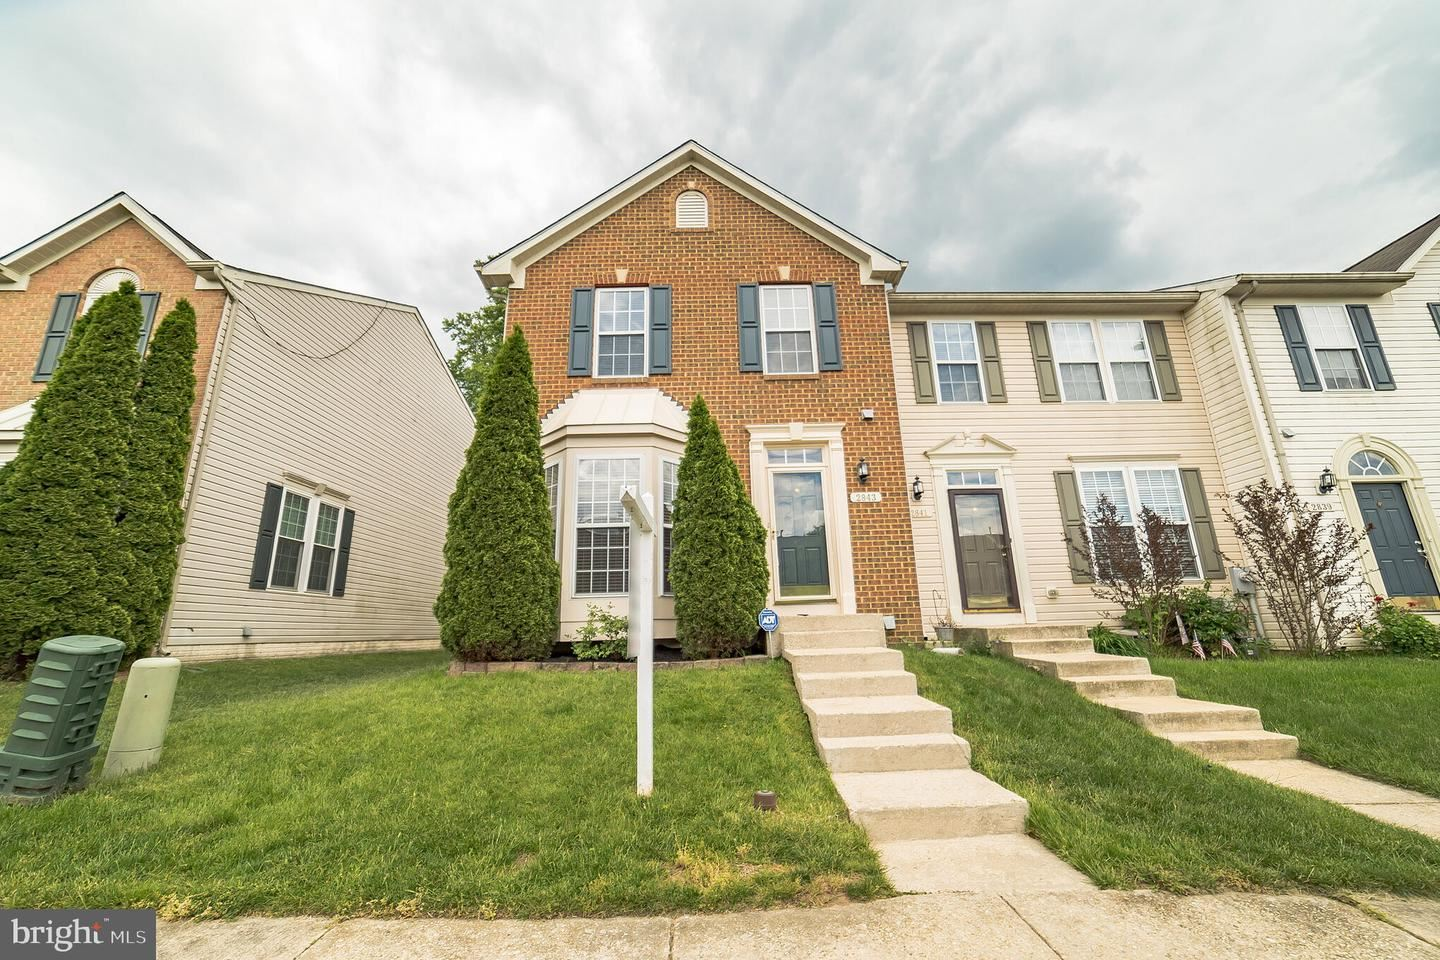 2843 SETTLERS VIEW DR, Odenton, MD 21113 - MLS#: MDAA468140